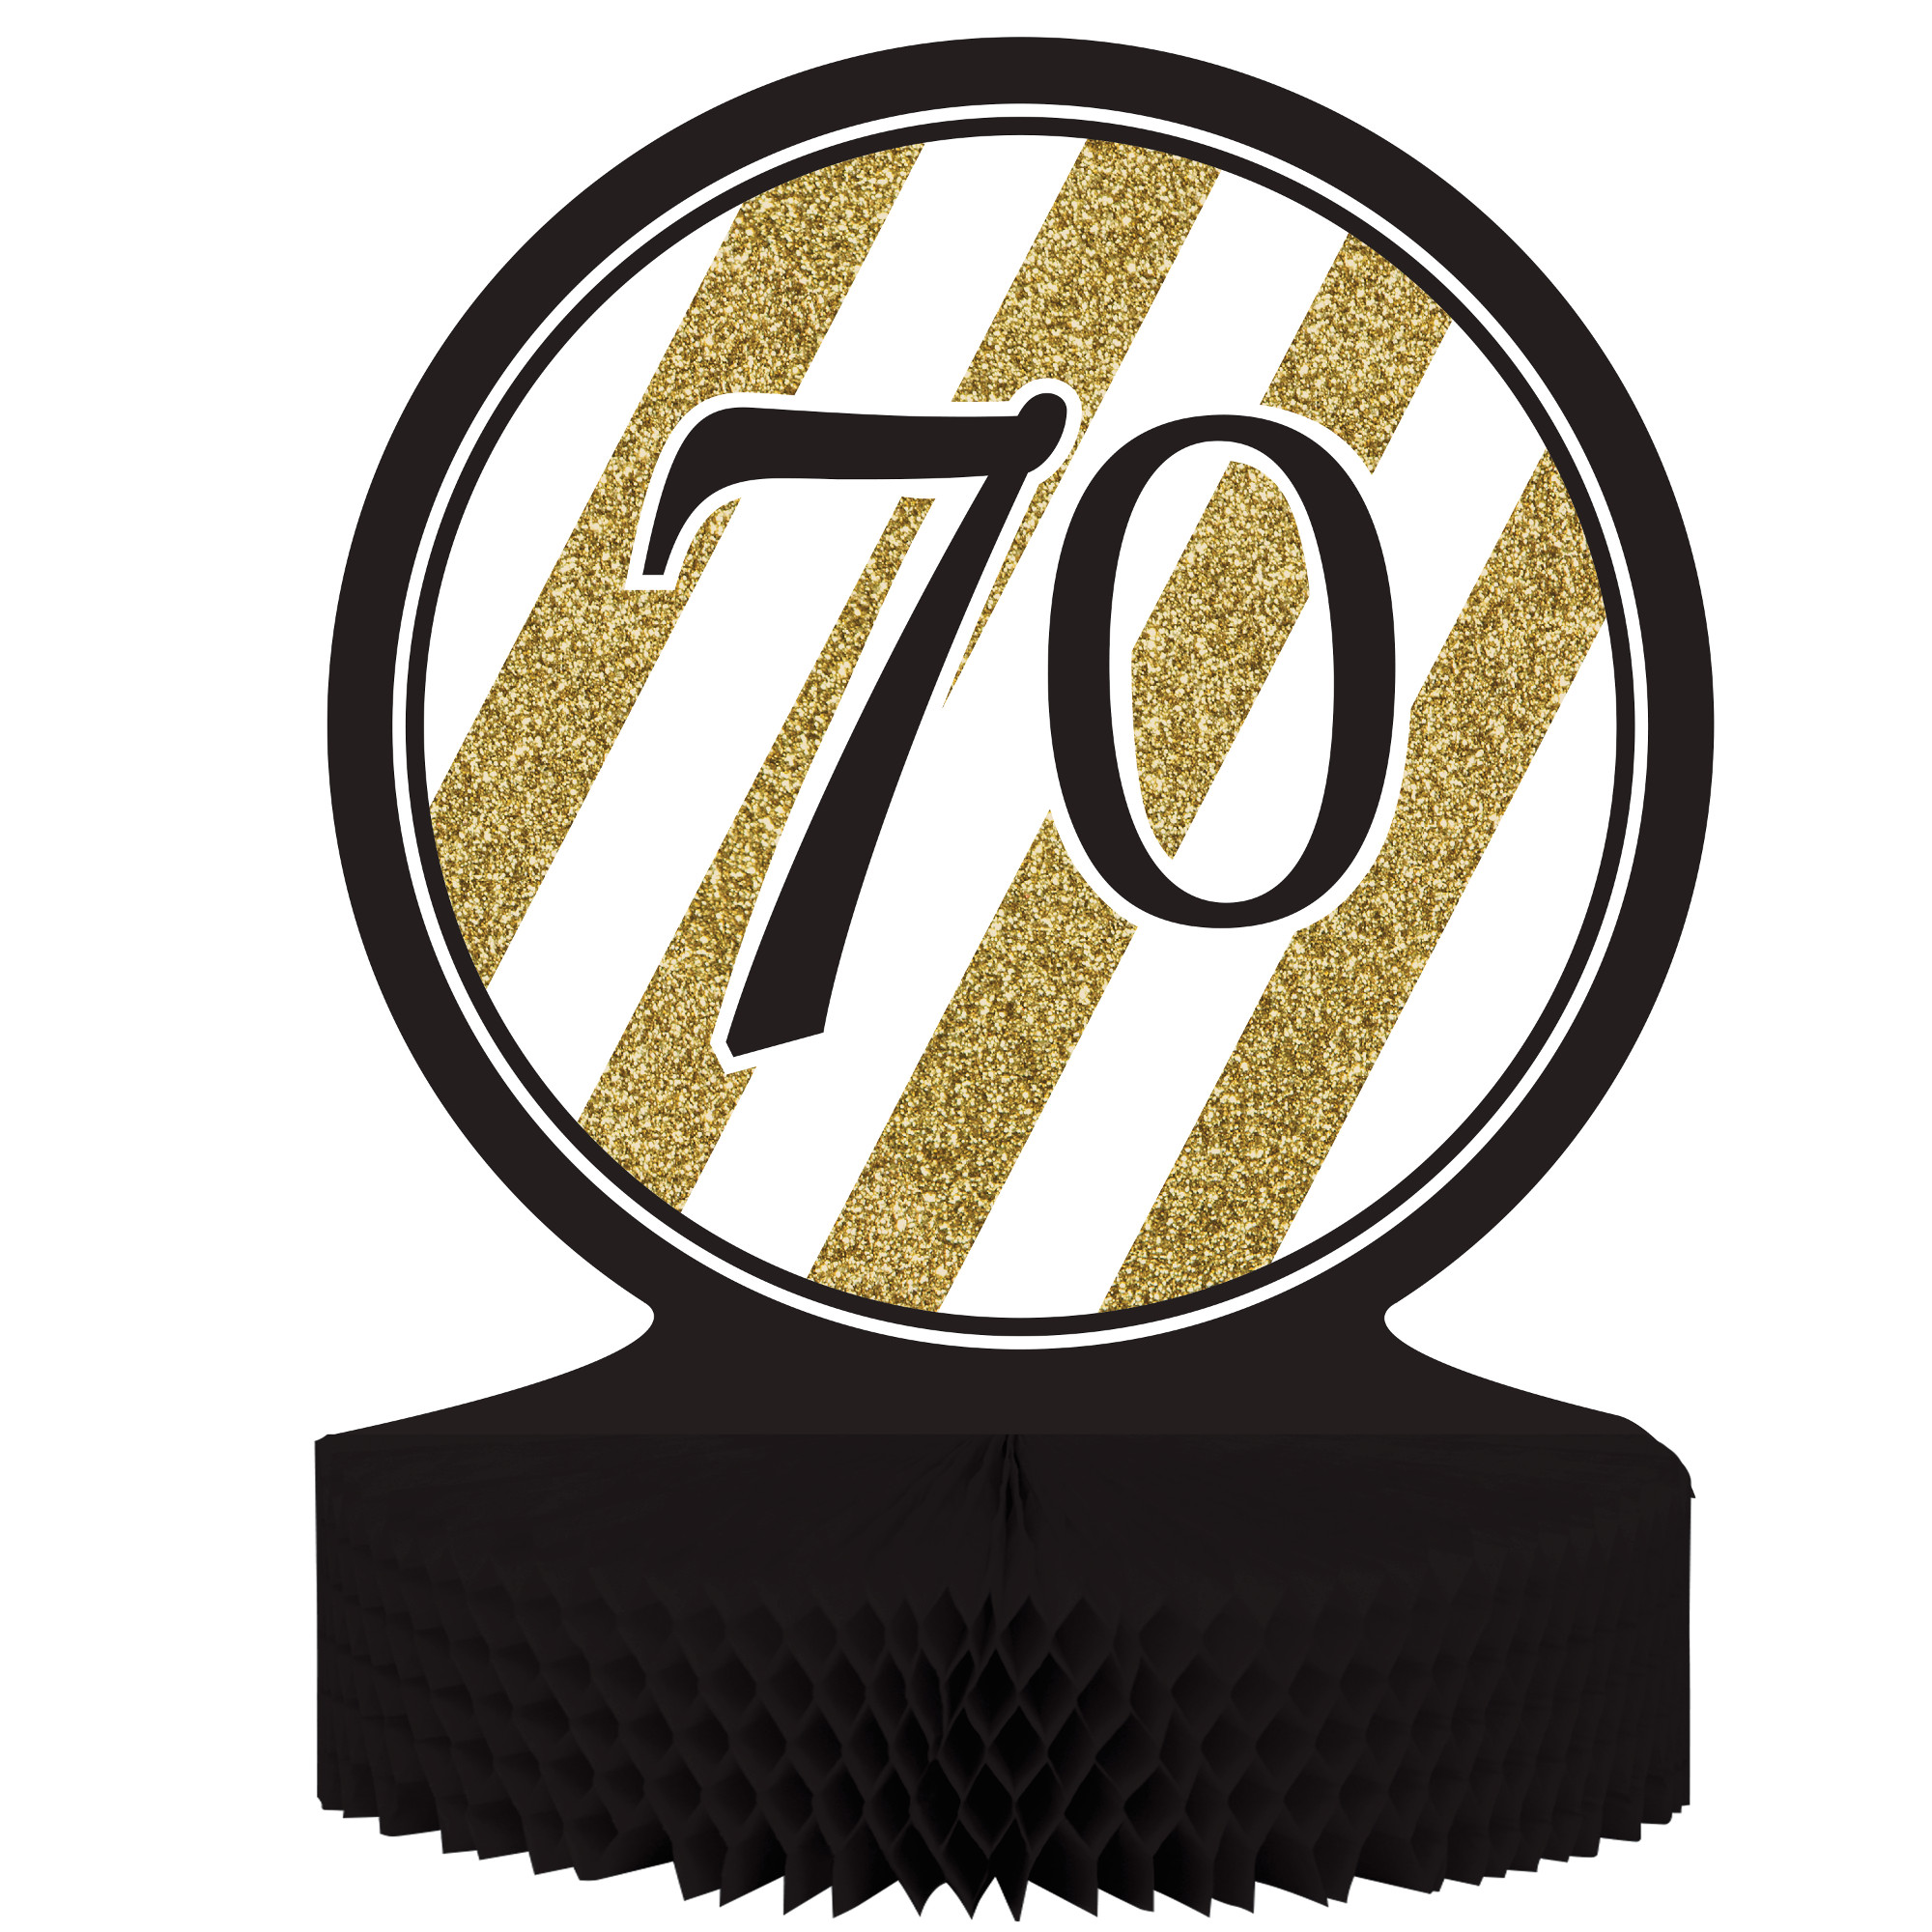 "Black & Gold 70th Birthday Honeycomb Centerpiece 12"" x 9"", Case of 6"